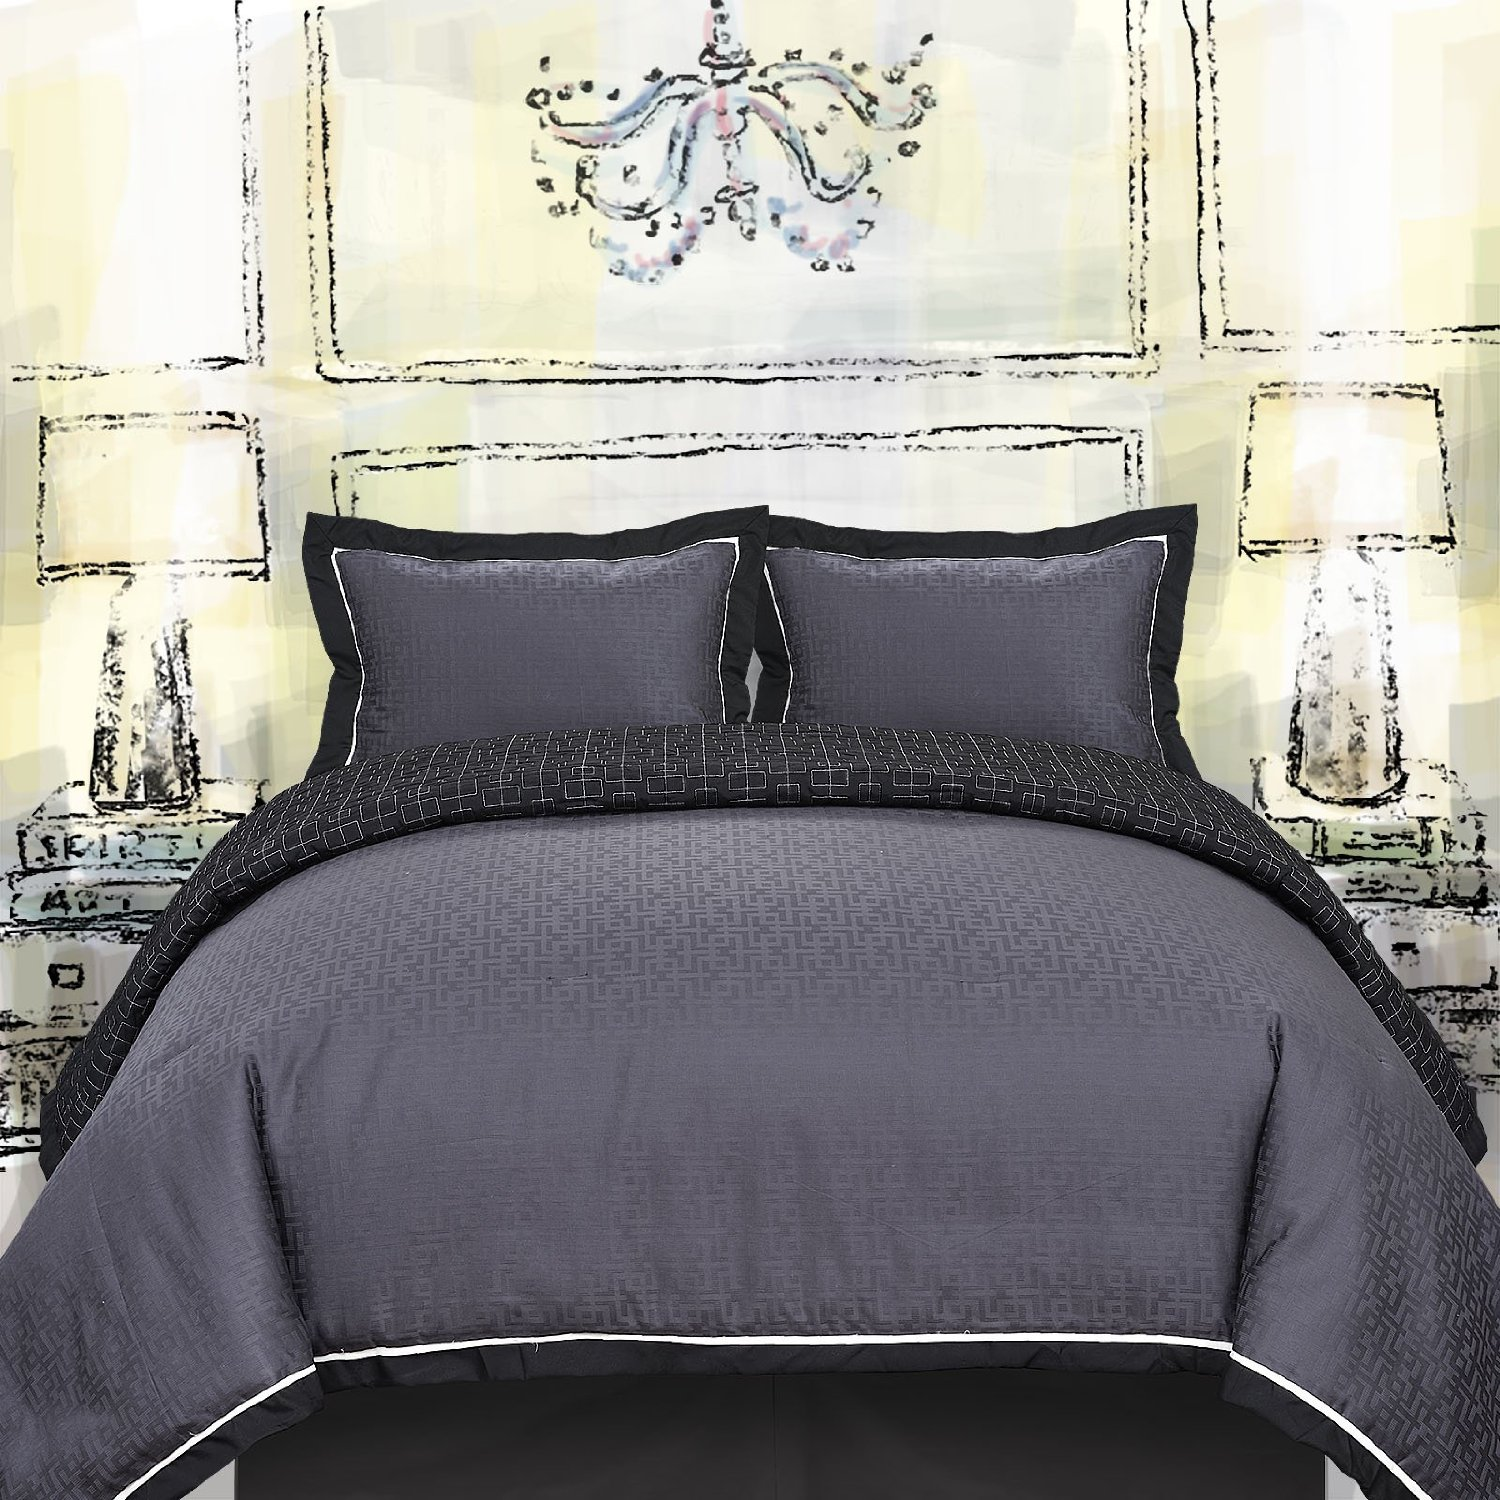 Charcoal Grey Bedding Charcoal Grey Comforter And Bedding Sets